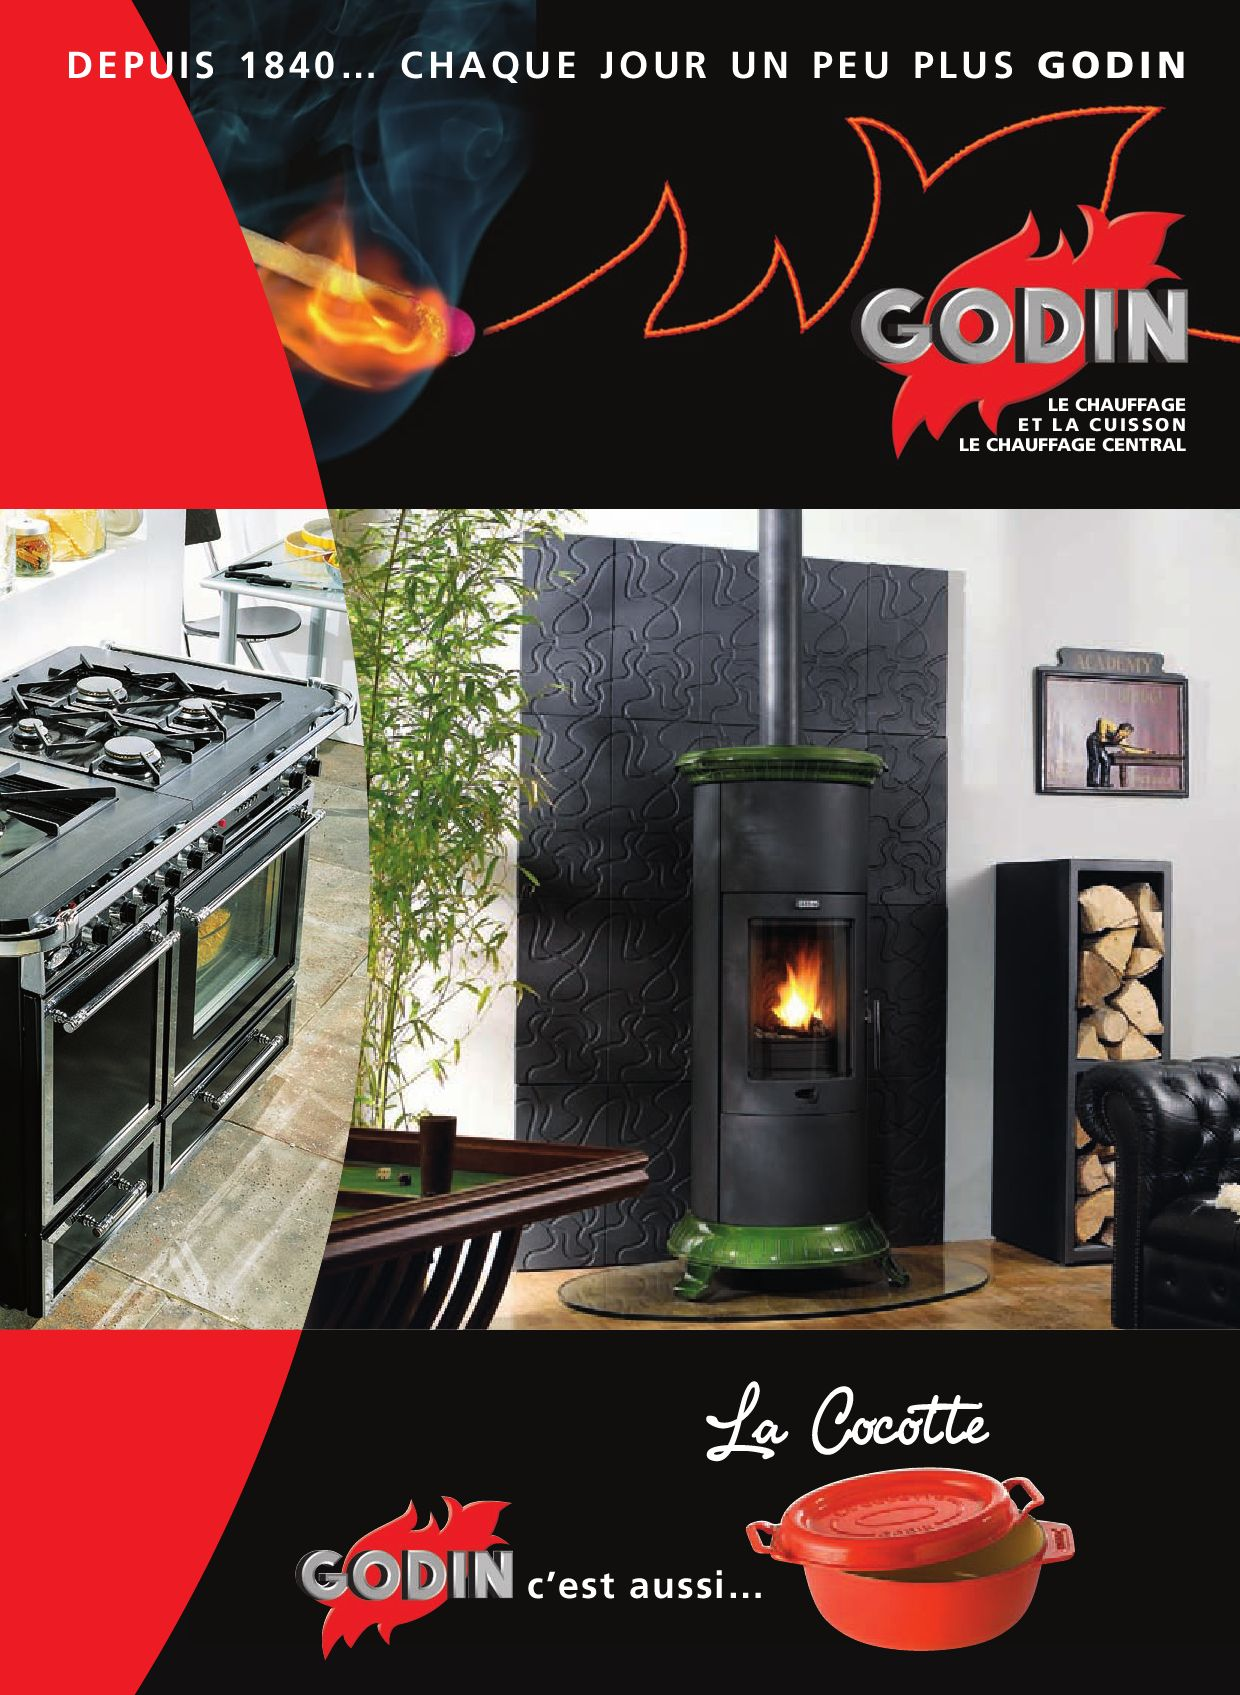 Catalogue Godin 2009 2010 By Moret Renaud Issuu